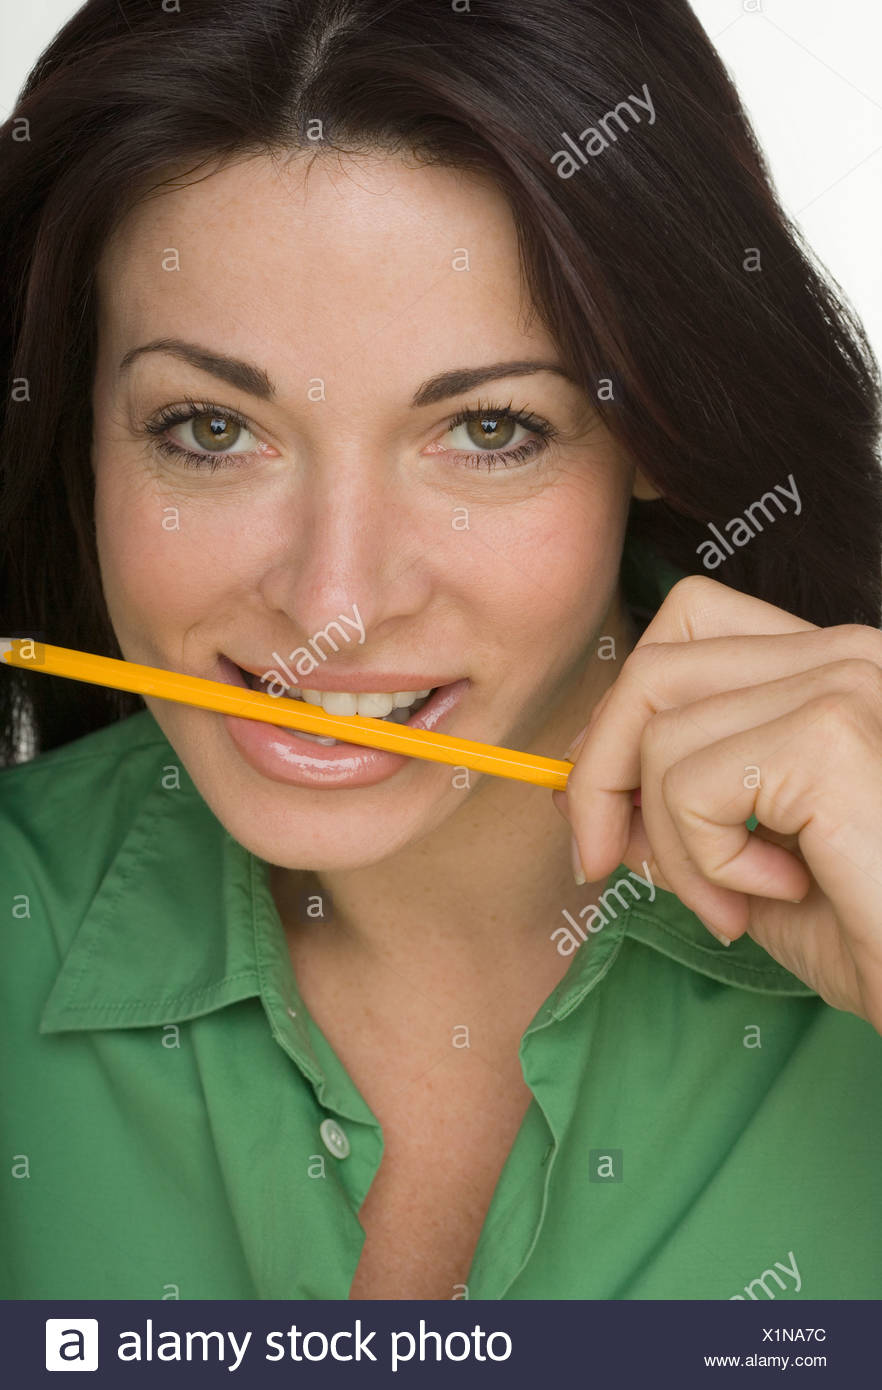 Portrait of woman with yellow pencil between teeth - Stock Image